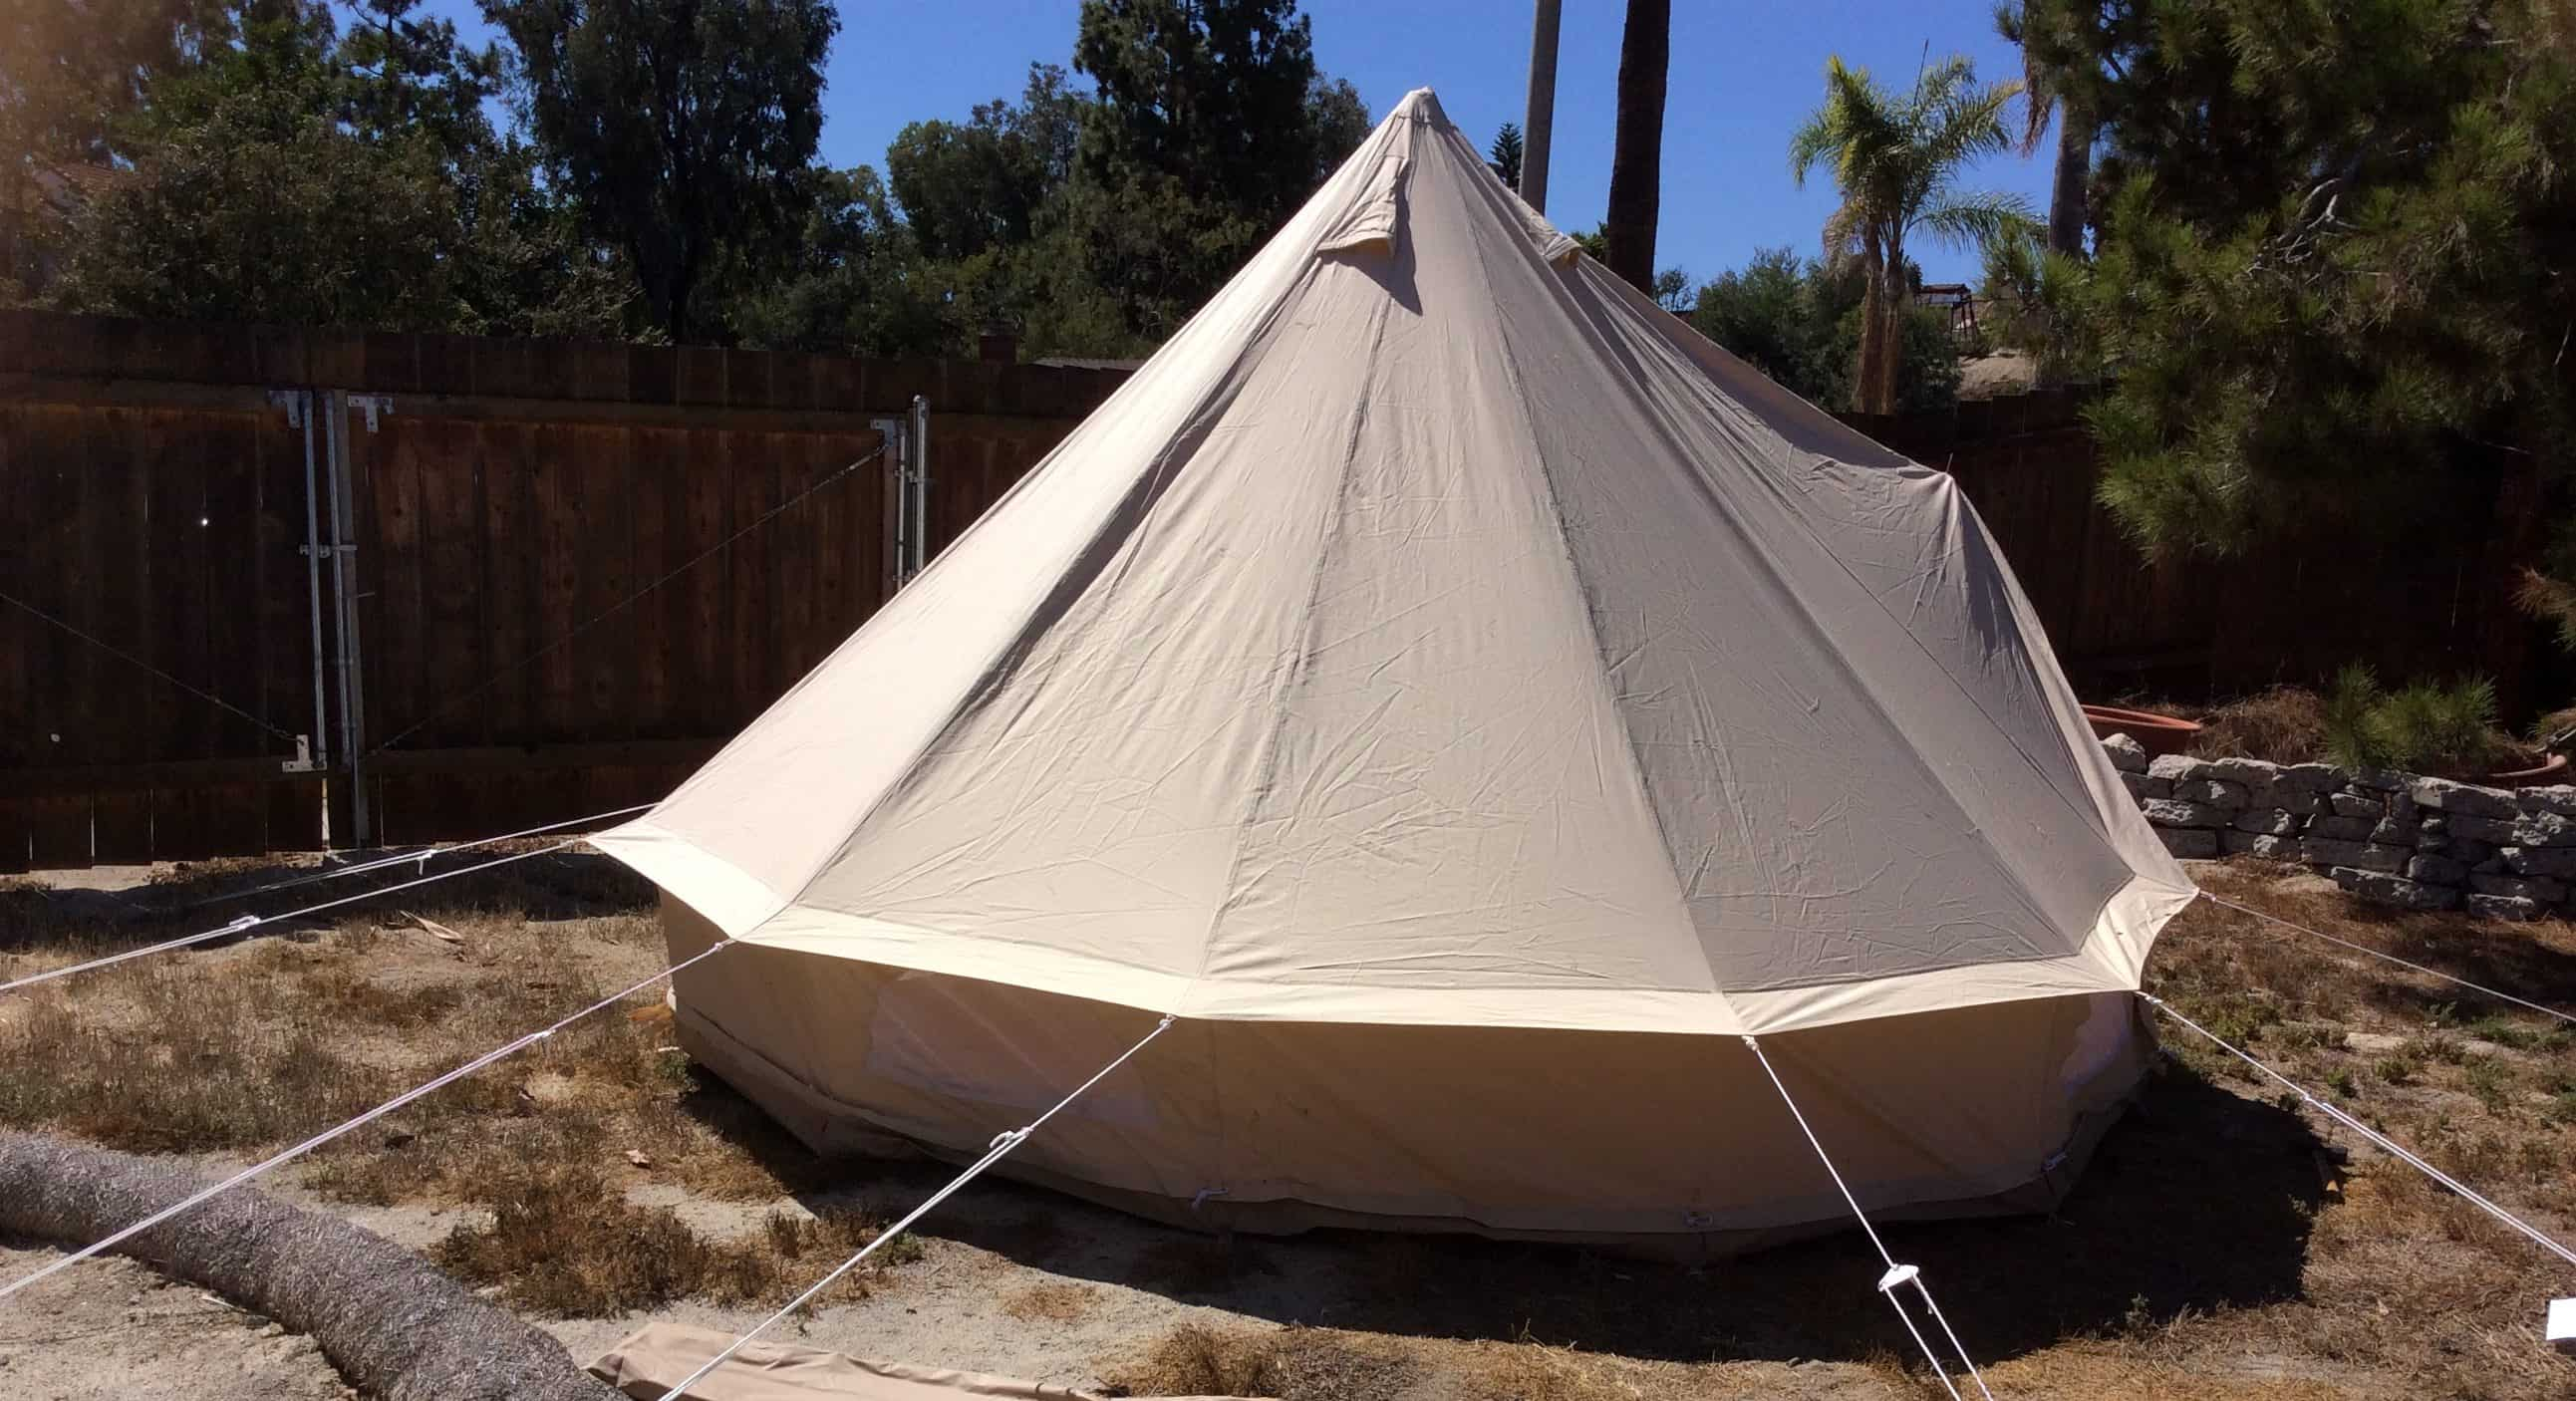 This tent is amazing!! First my son had this tent up in less than 15 minutes. DONE. UP and usable in 15 minutes. With never having put up a tent ... & Dream House Glamping Tent Review!! -